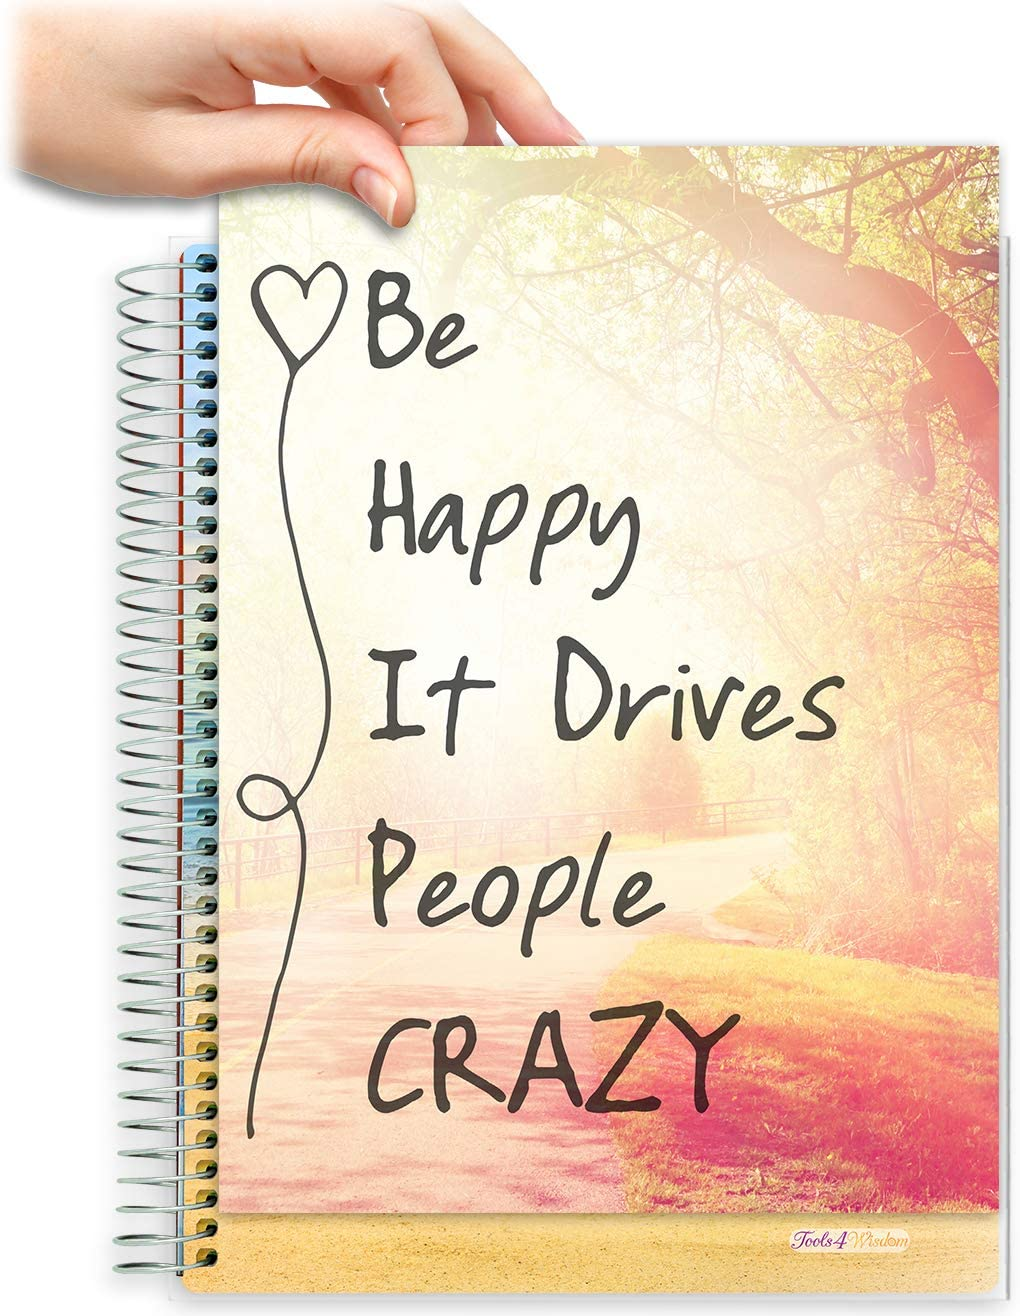 8.5x11 Customizable Softcover Planner • April 2021 to June 2022 Academic Year •  Be Happy